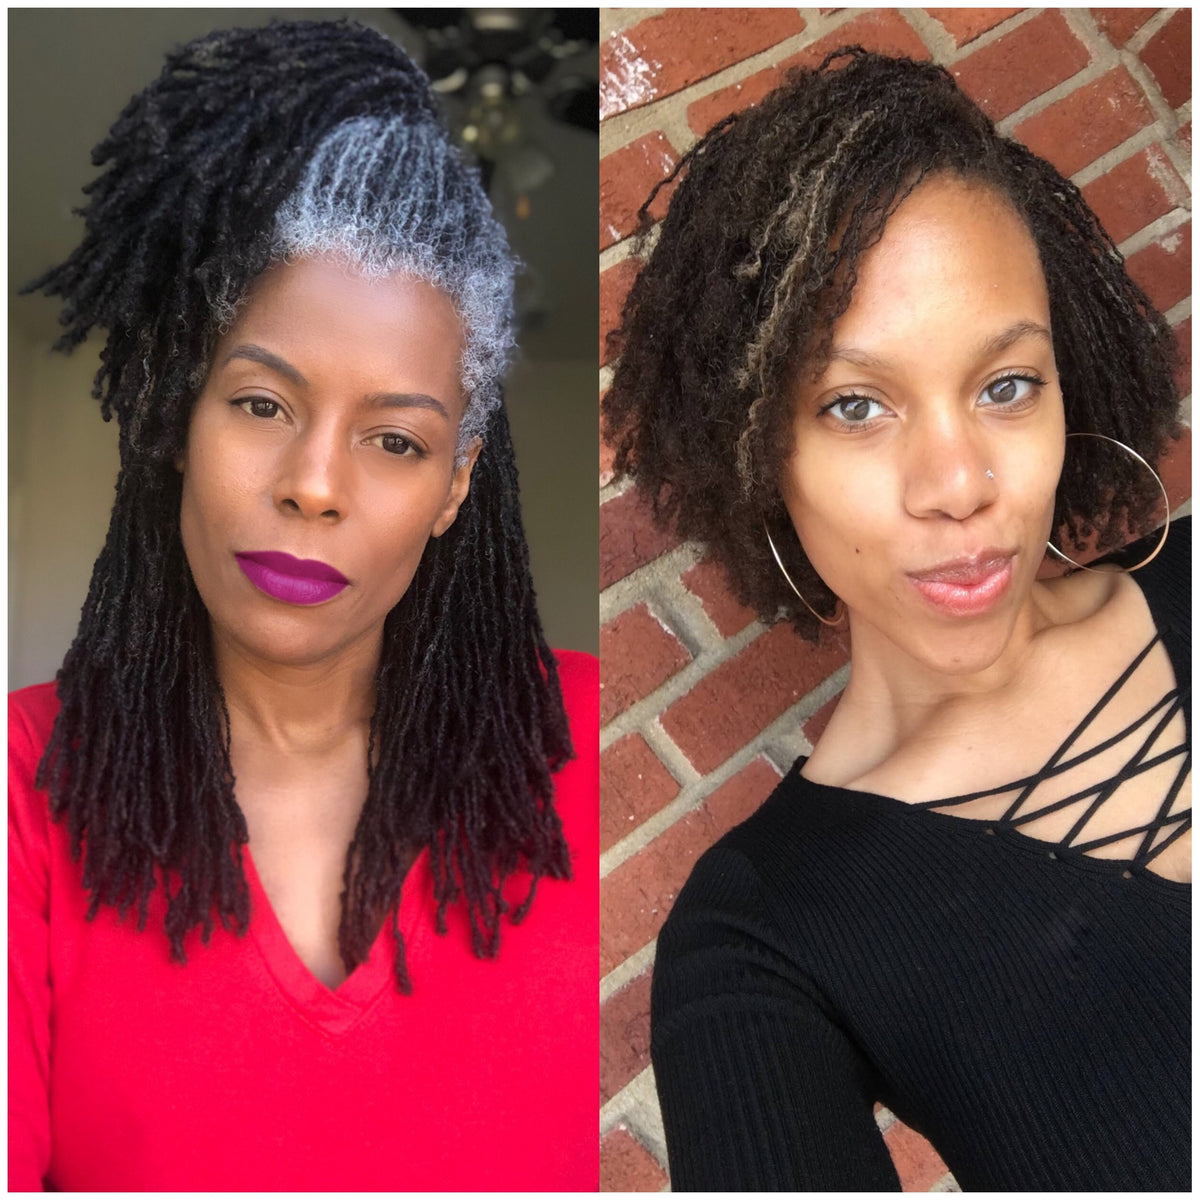 How Long Do Air Conditioners Last >> EDEN BodyWorks Loc Love Self-love is one of the driving motives behind embracing natural hair ...